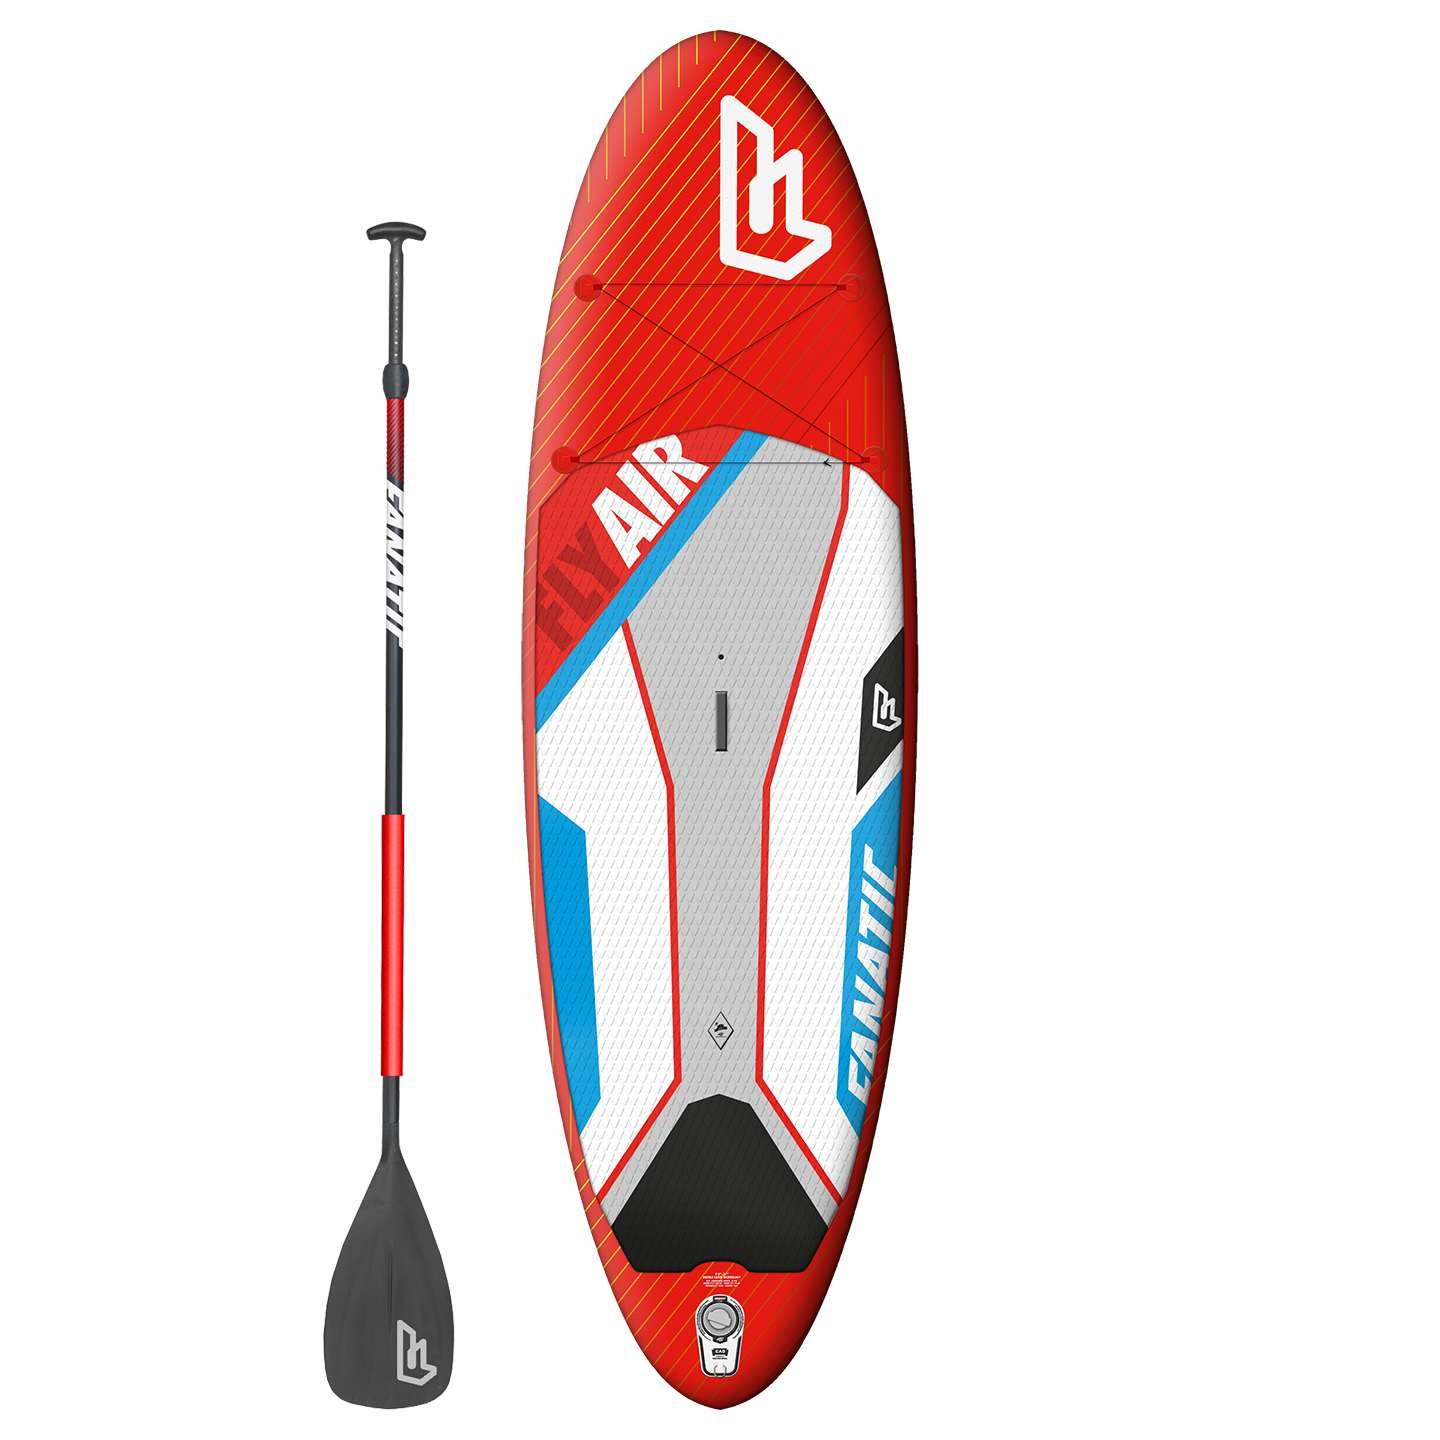 fanatic-fly-air-prem-allround-10-8-sup-2015-cutout-zoom